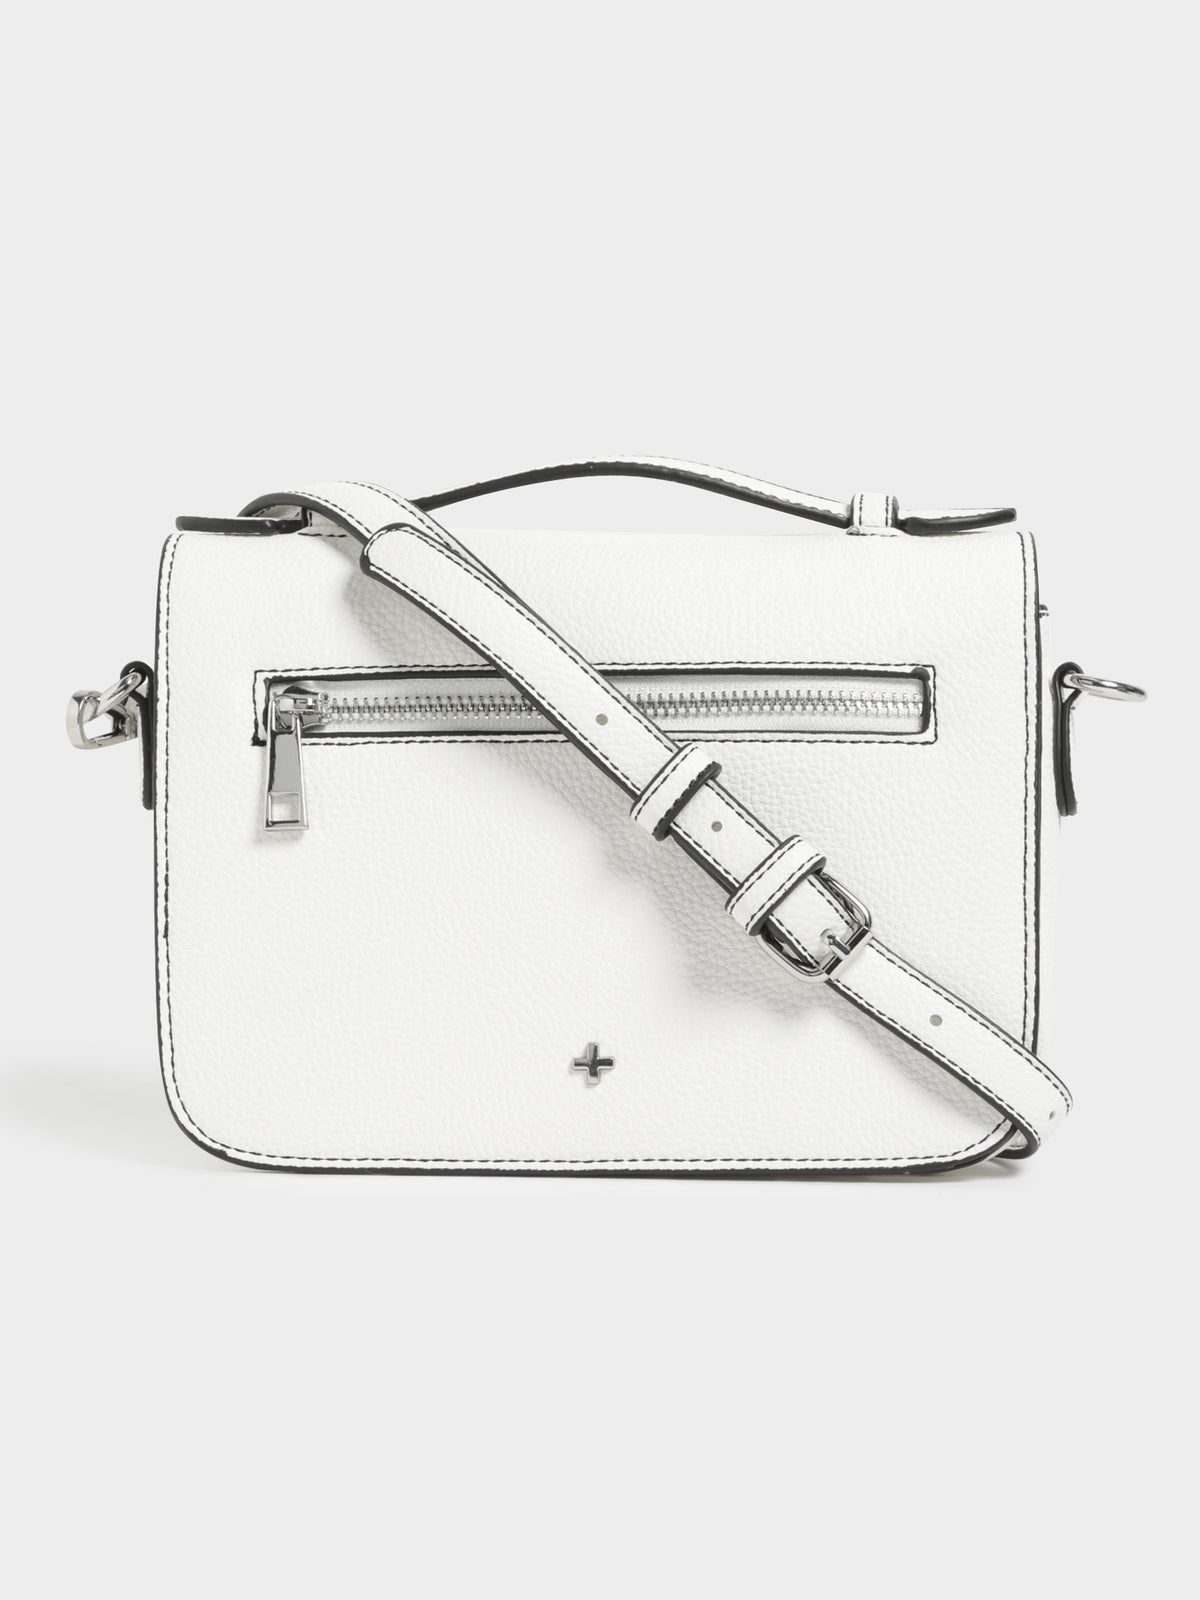 Lisl Cross Body Handbag in White